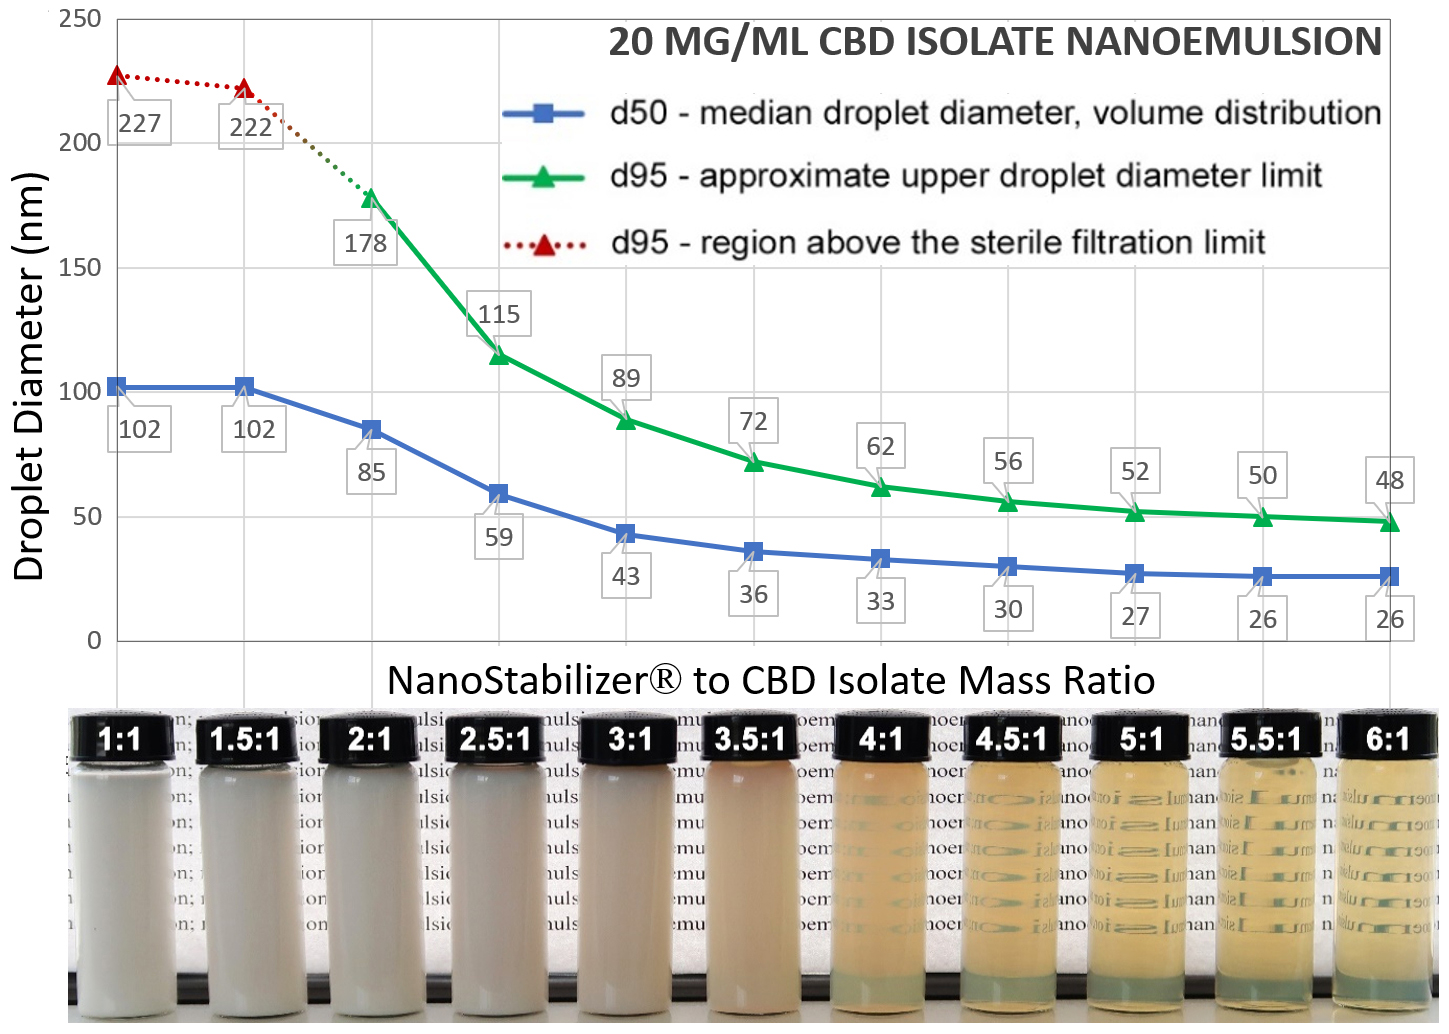 Droplet sizes and translucency versus NanoStabilizer to CBD isolate ratio